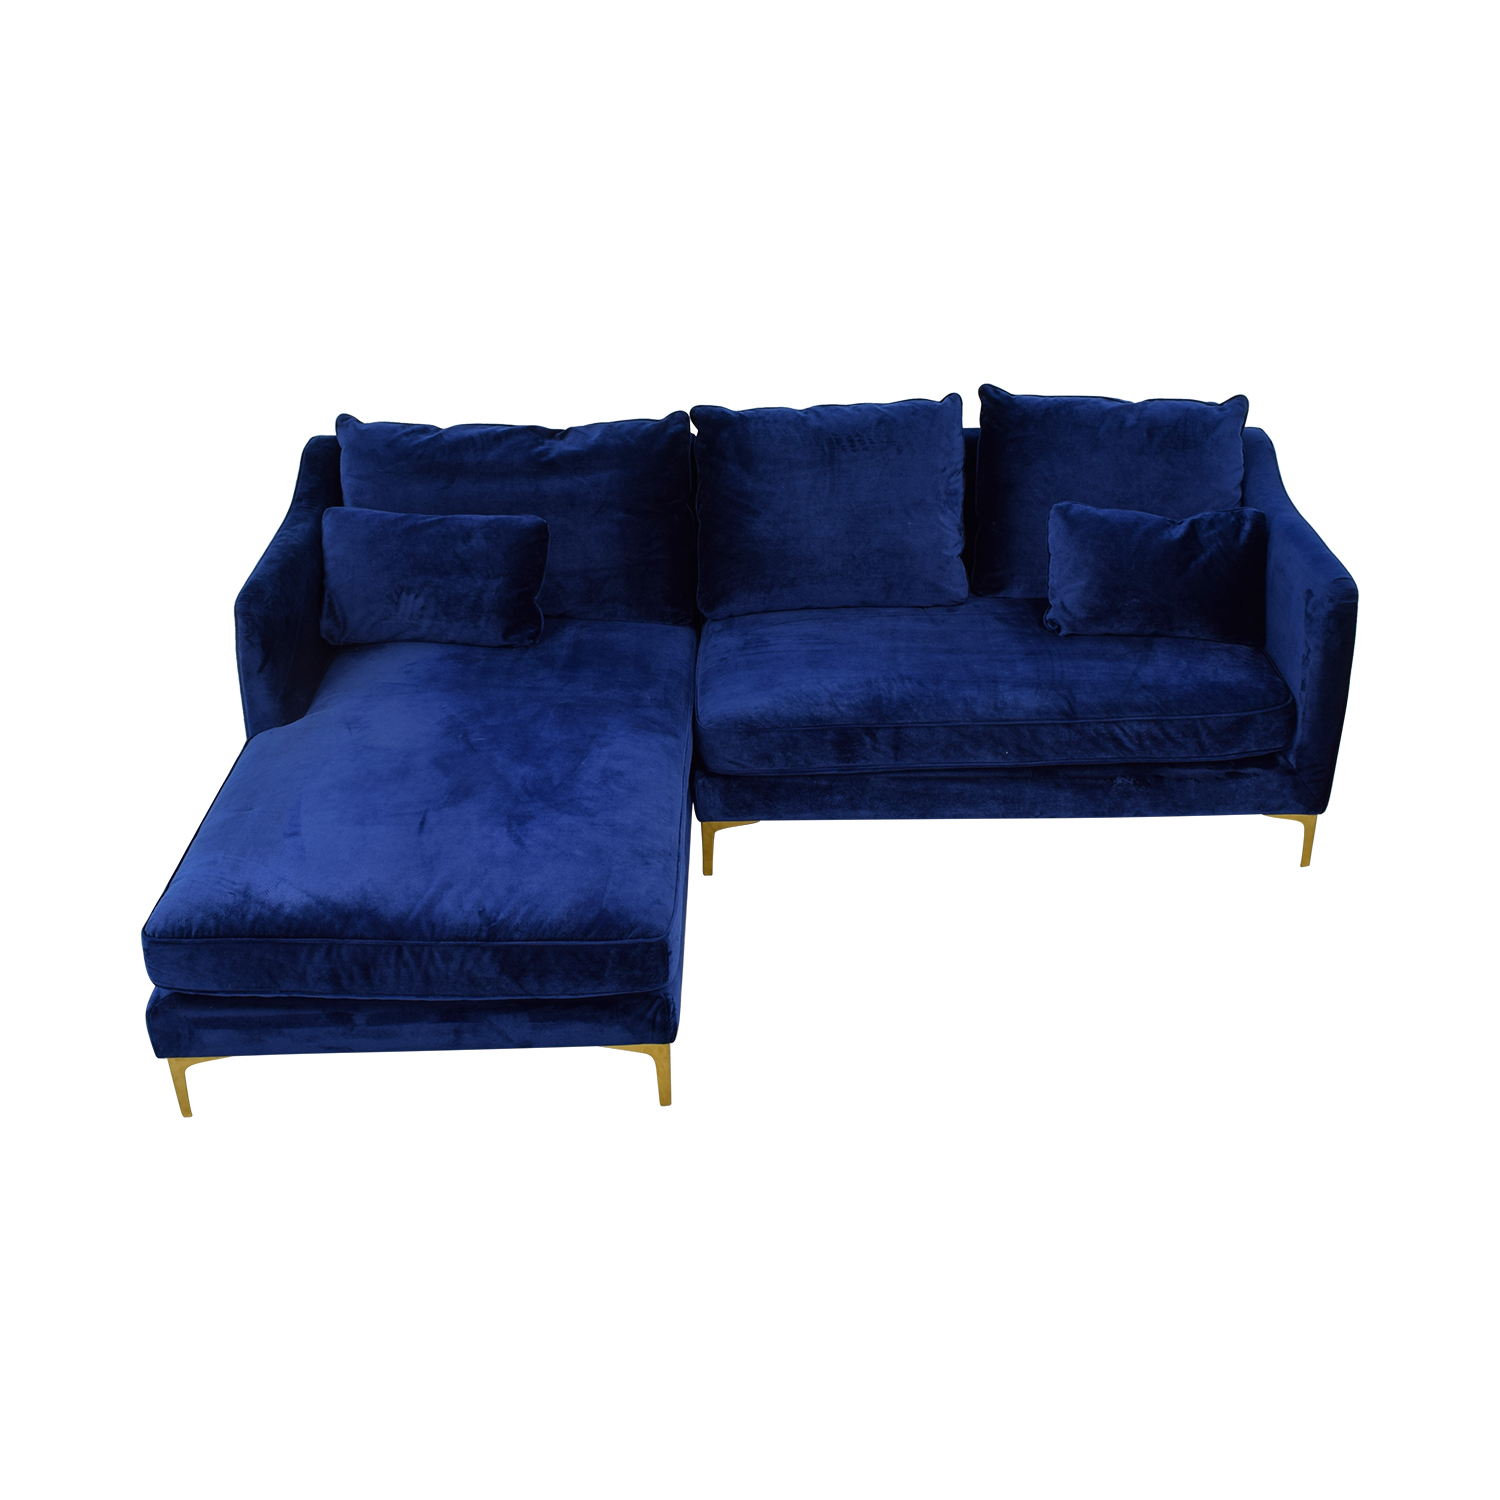 Caitlin Oxford Blue Left Chaise Sectional Sofas